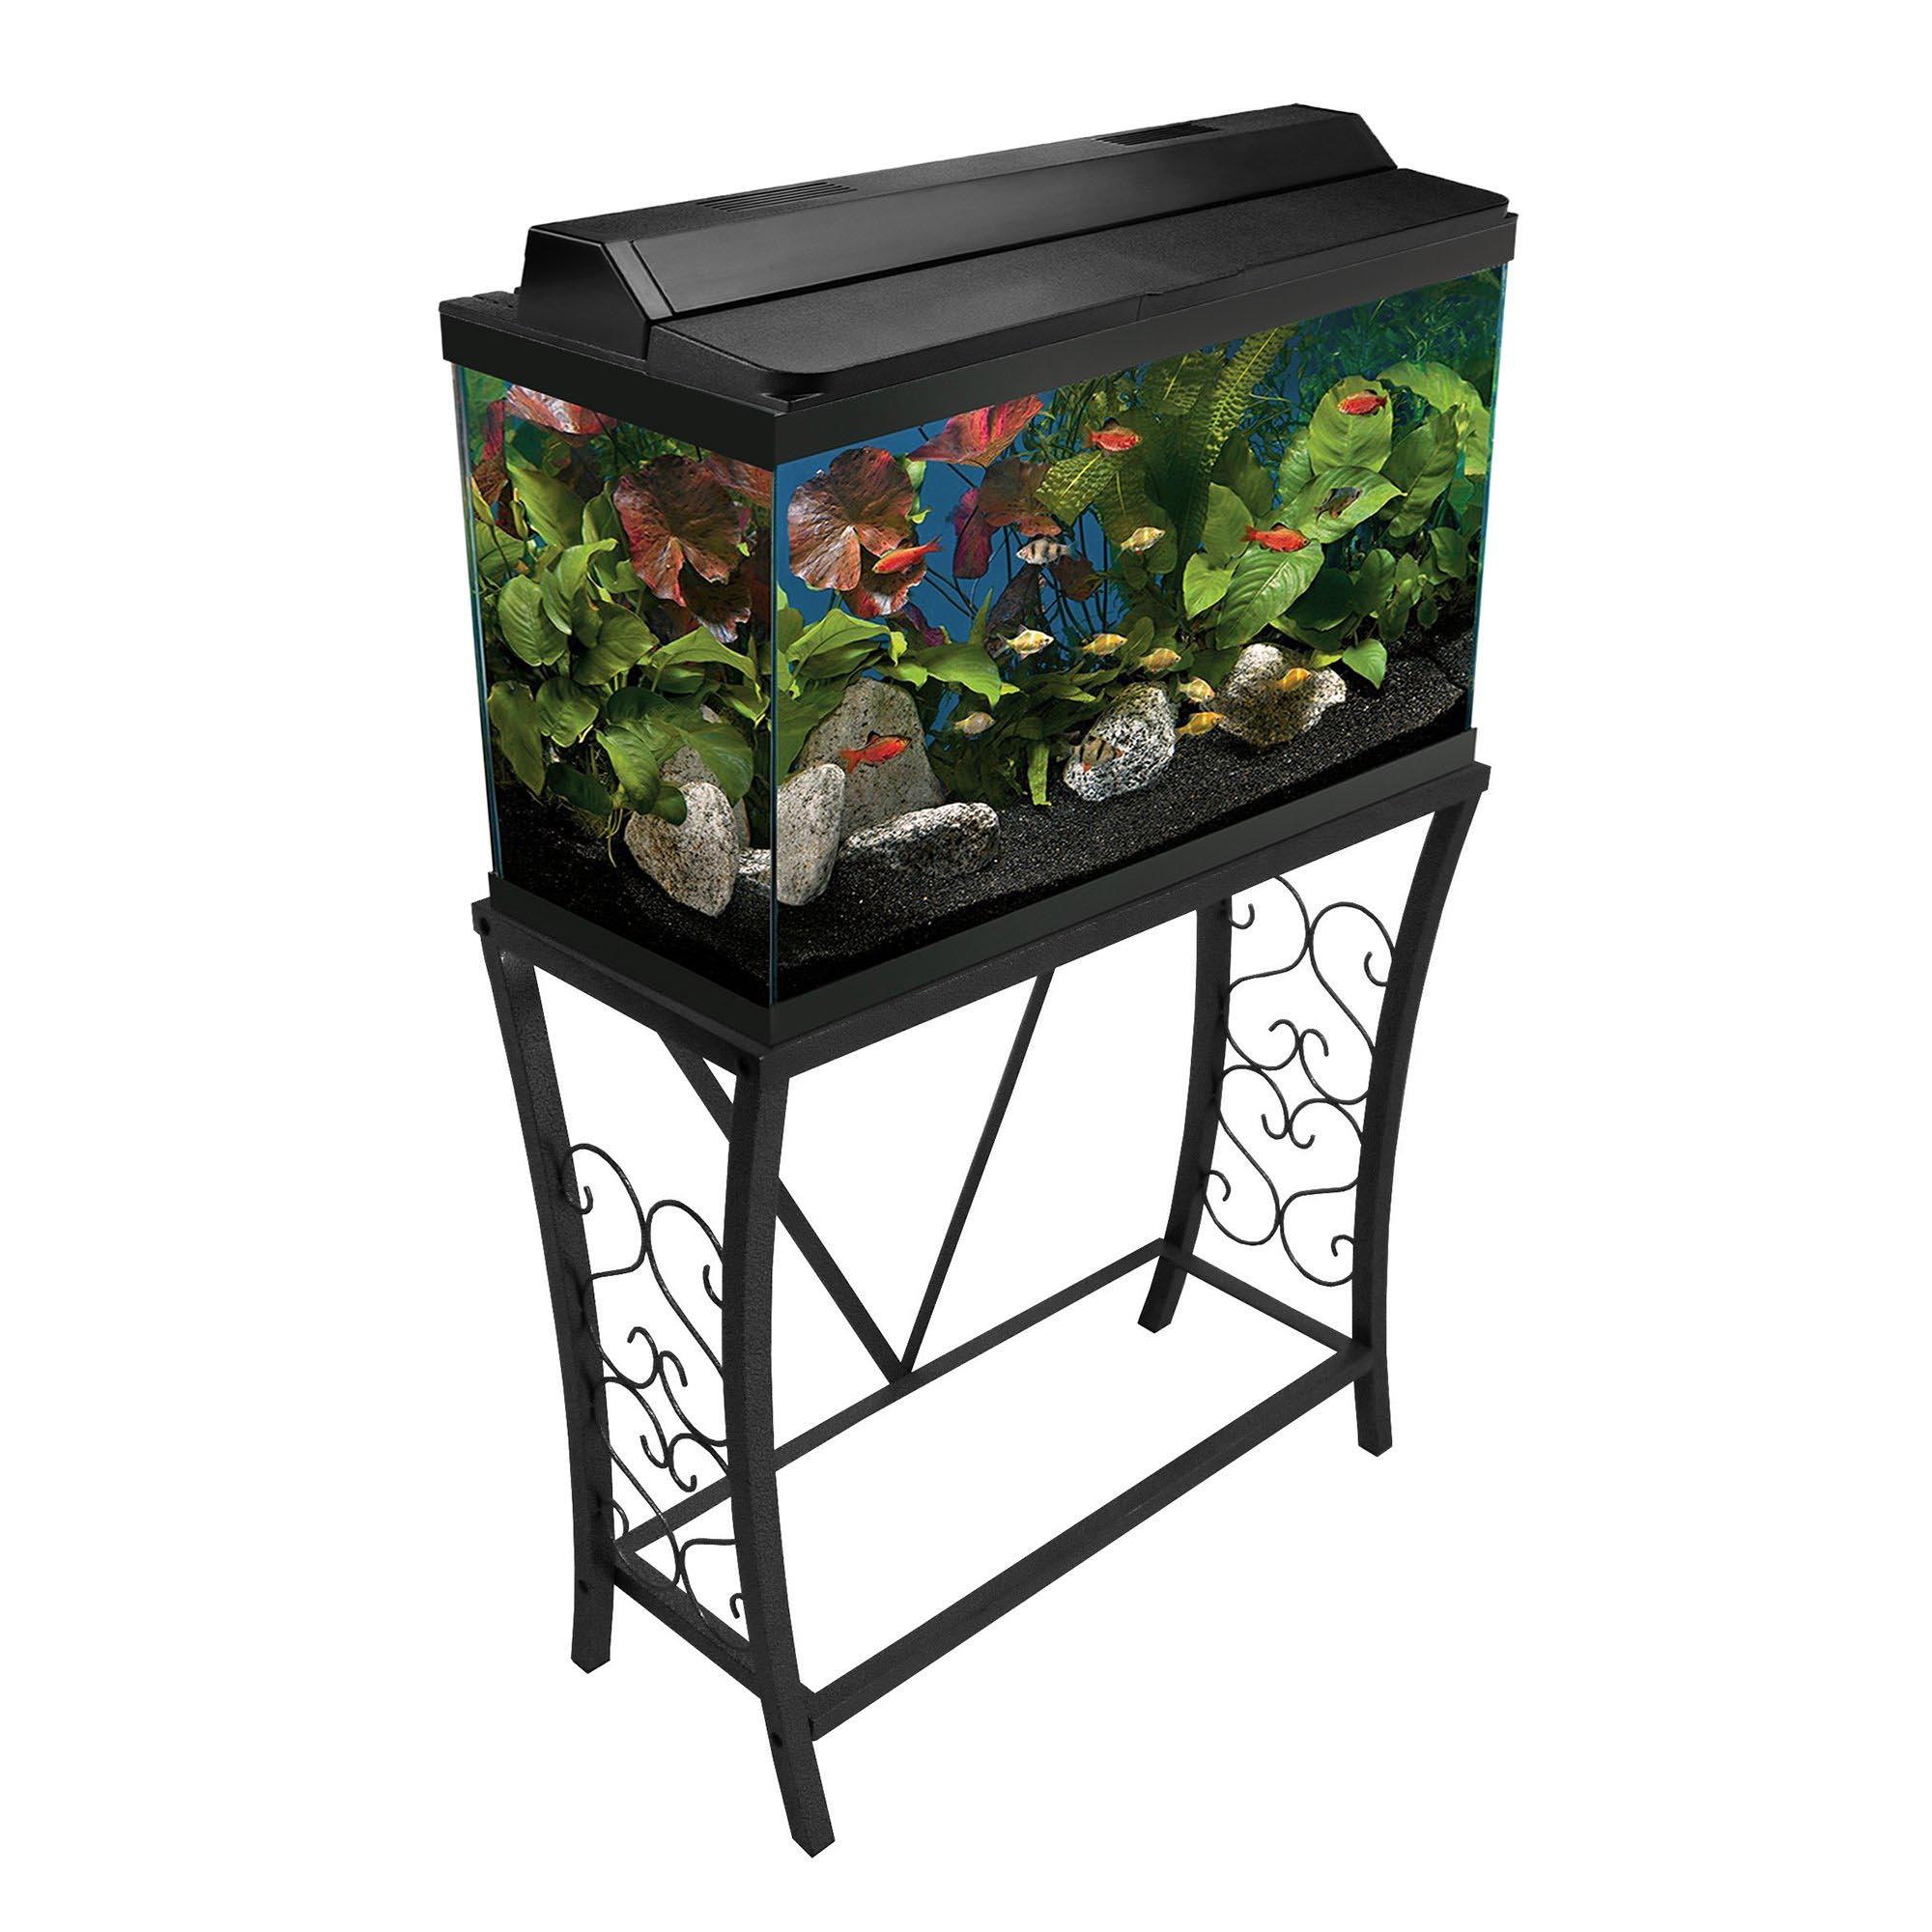 Aquarium Stands 30 Gallon